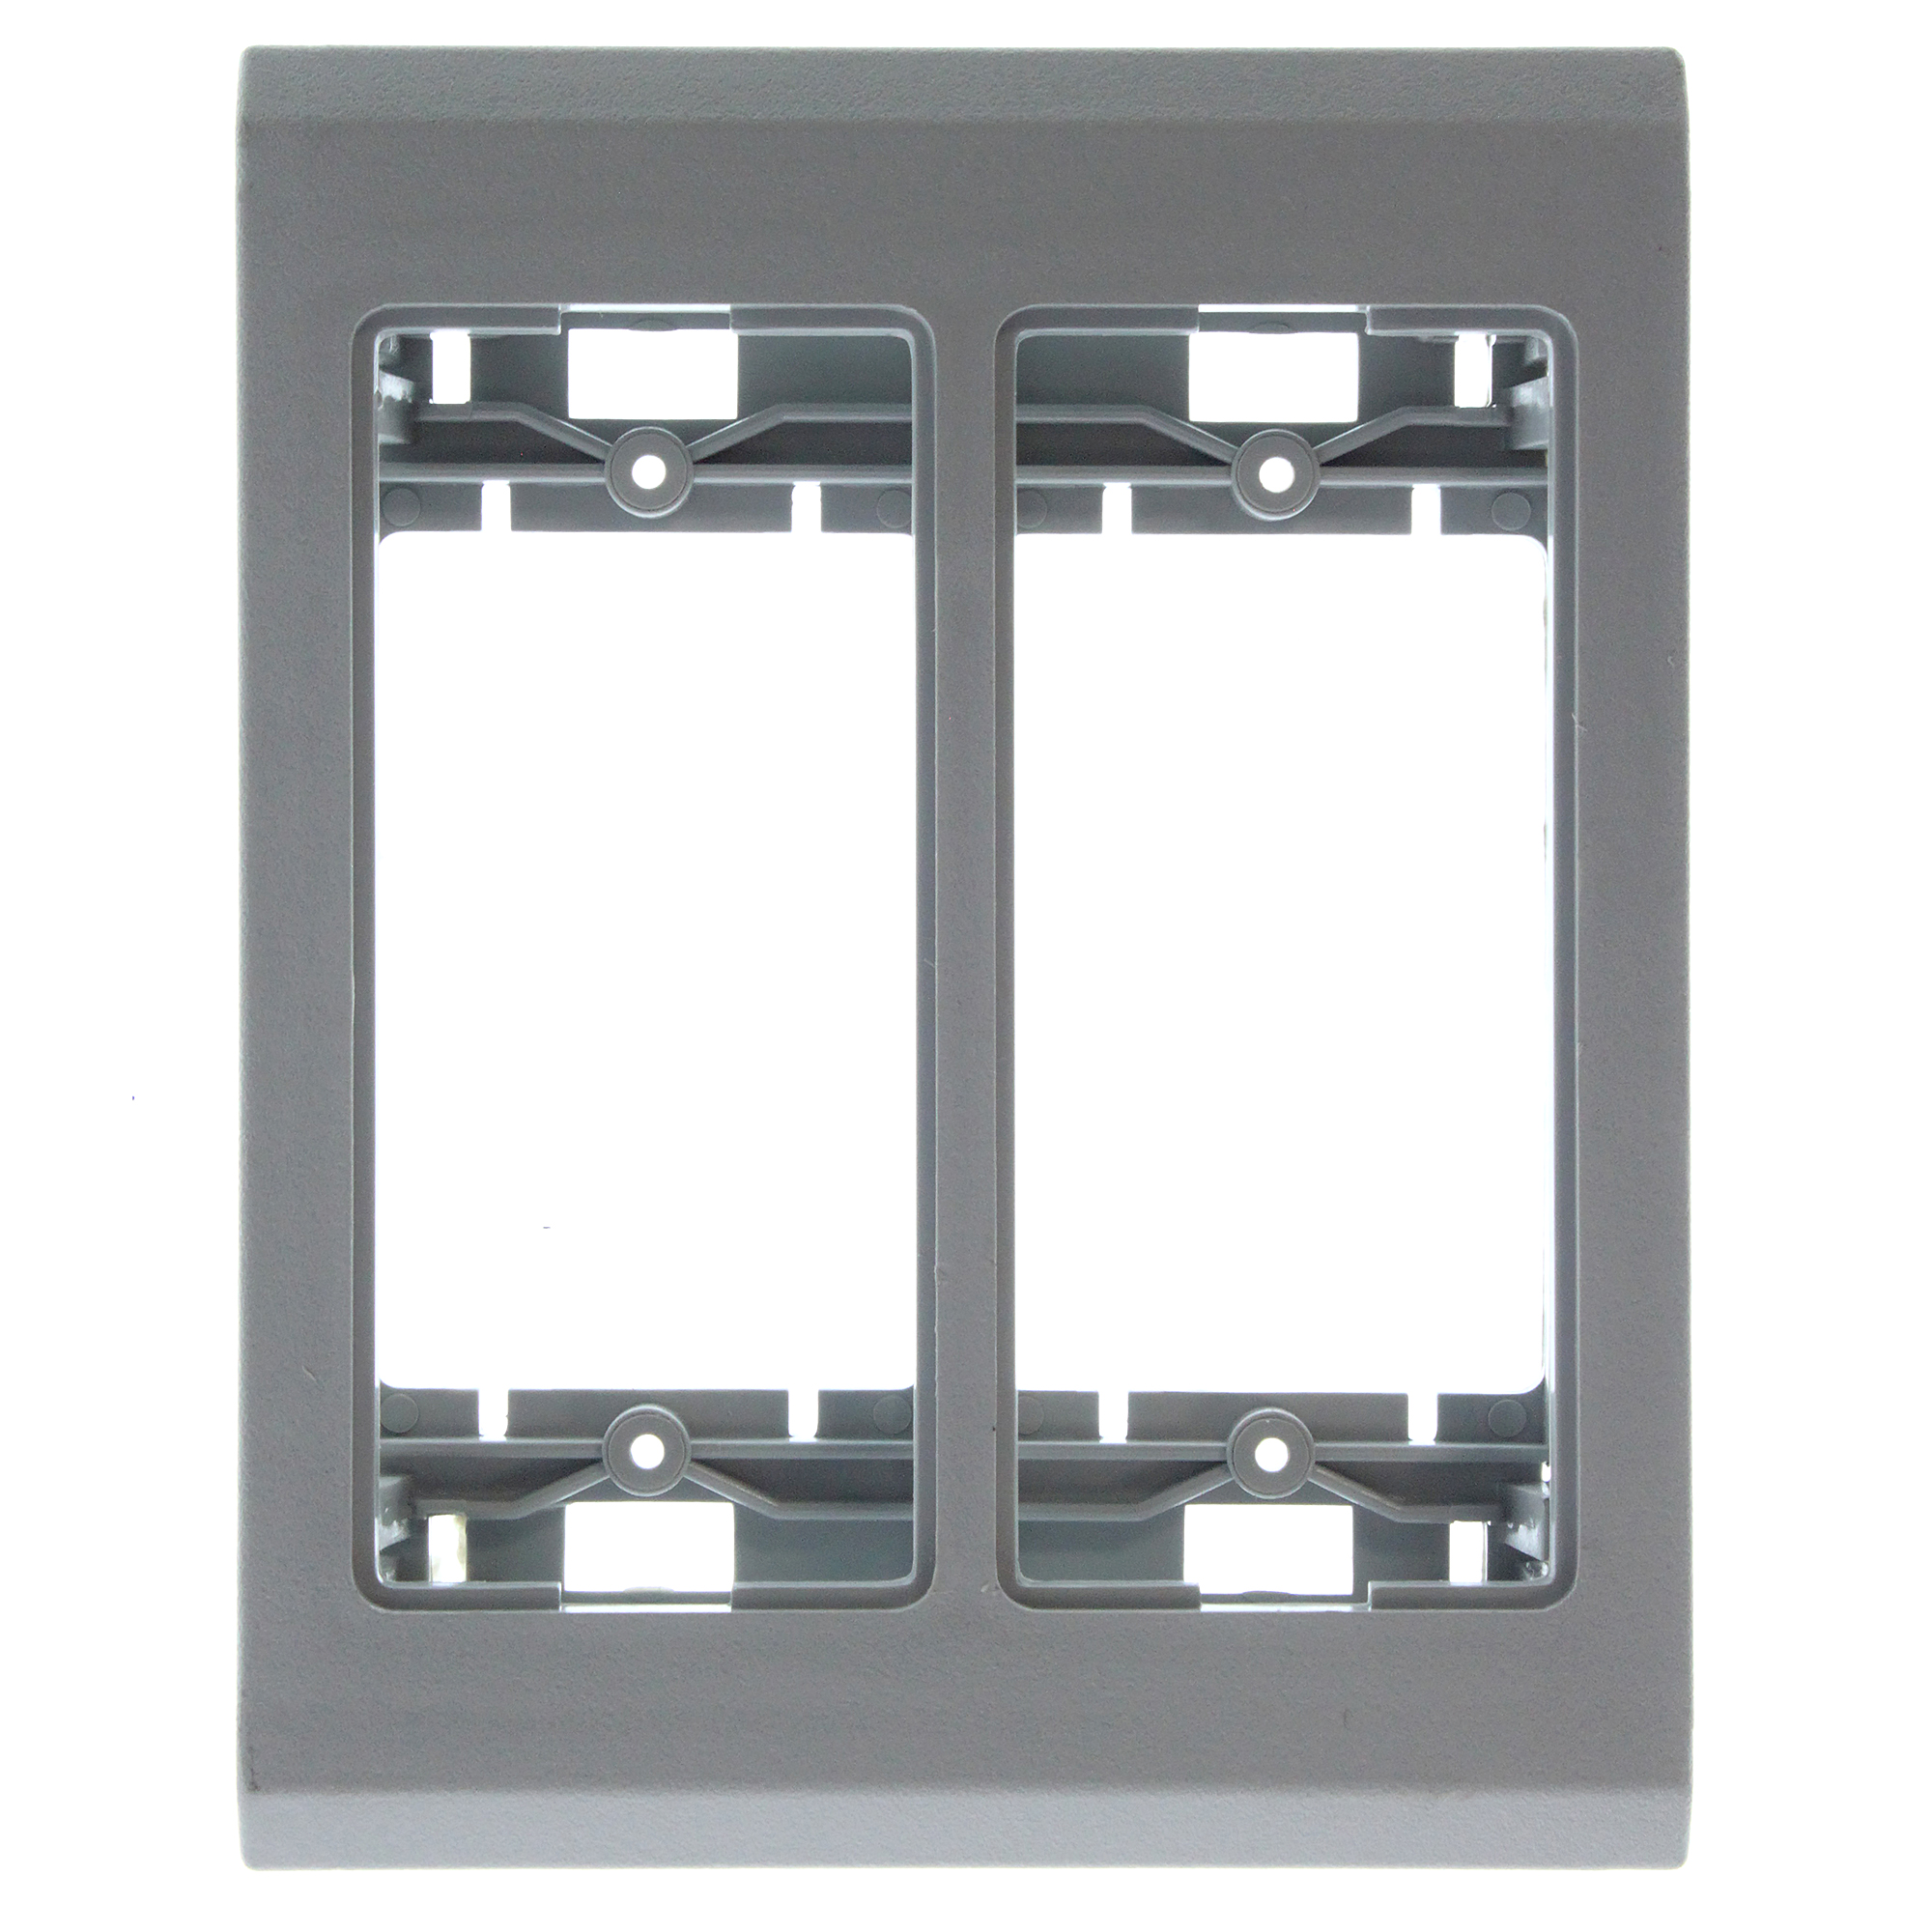 Details about WIREMOLD LEGRAND G4049 GRAY NON-METALLIC DEVICE PLATE F4, GRAY